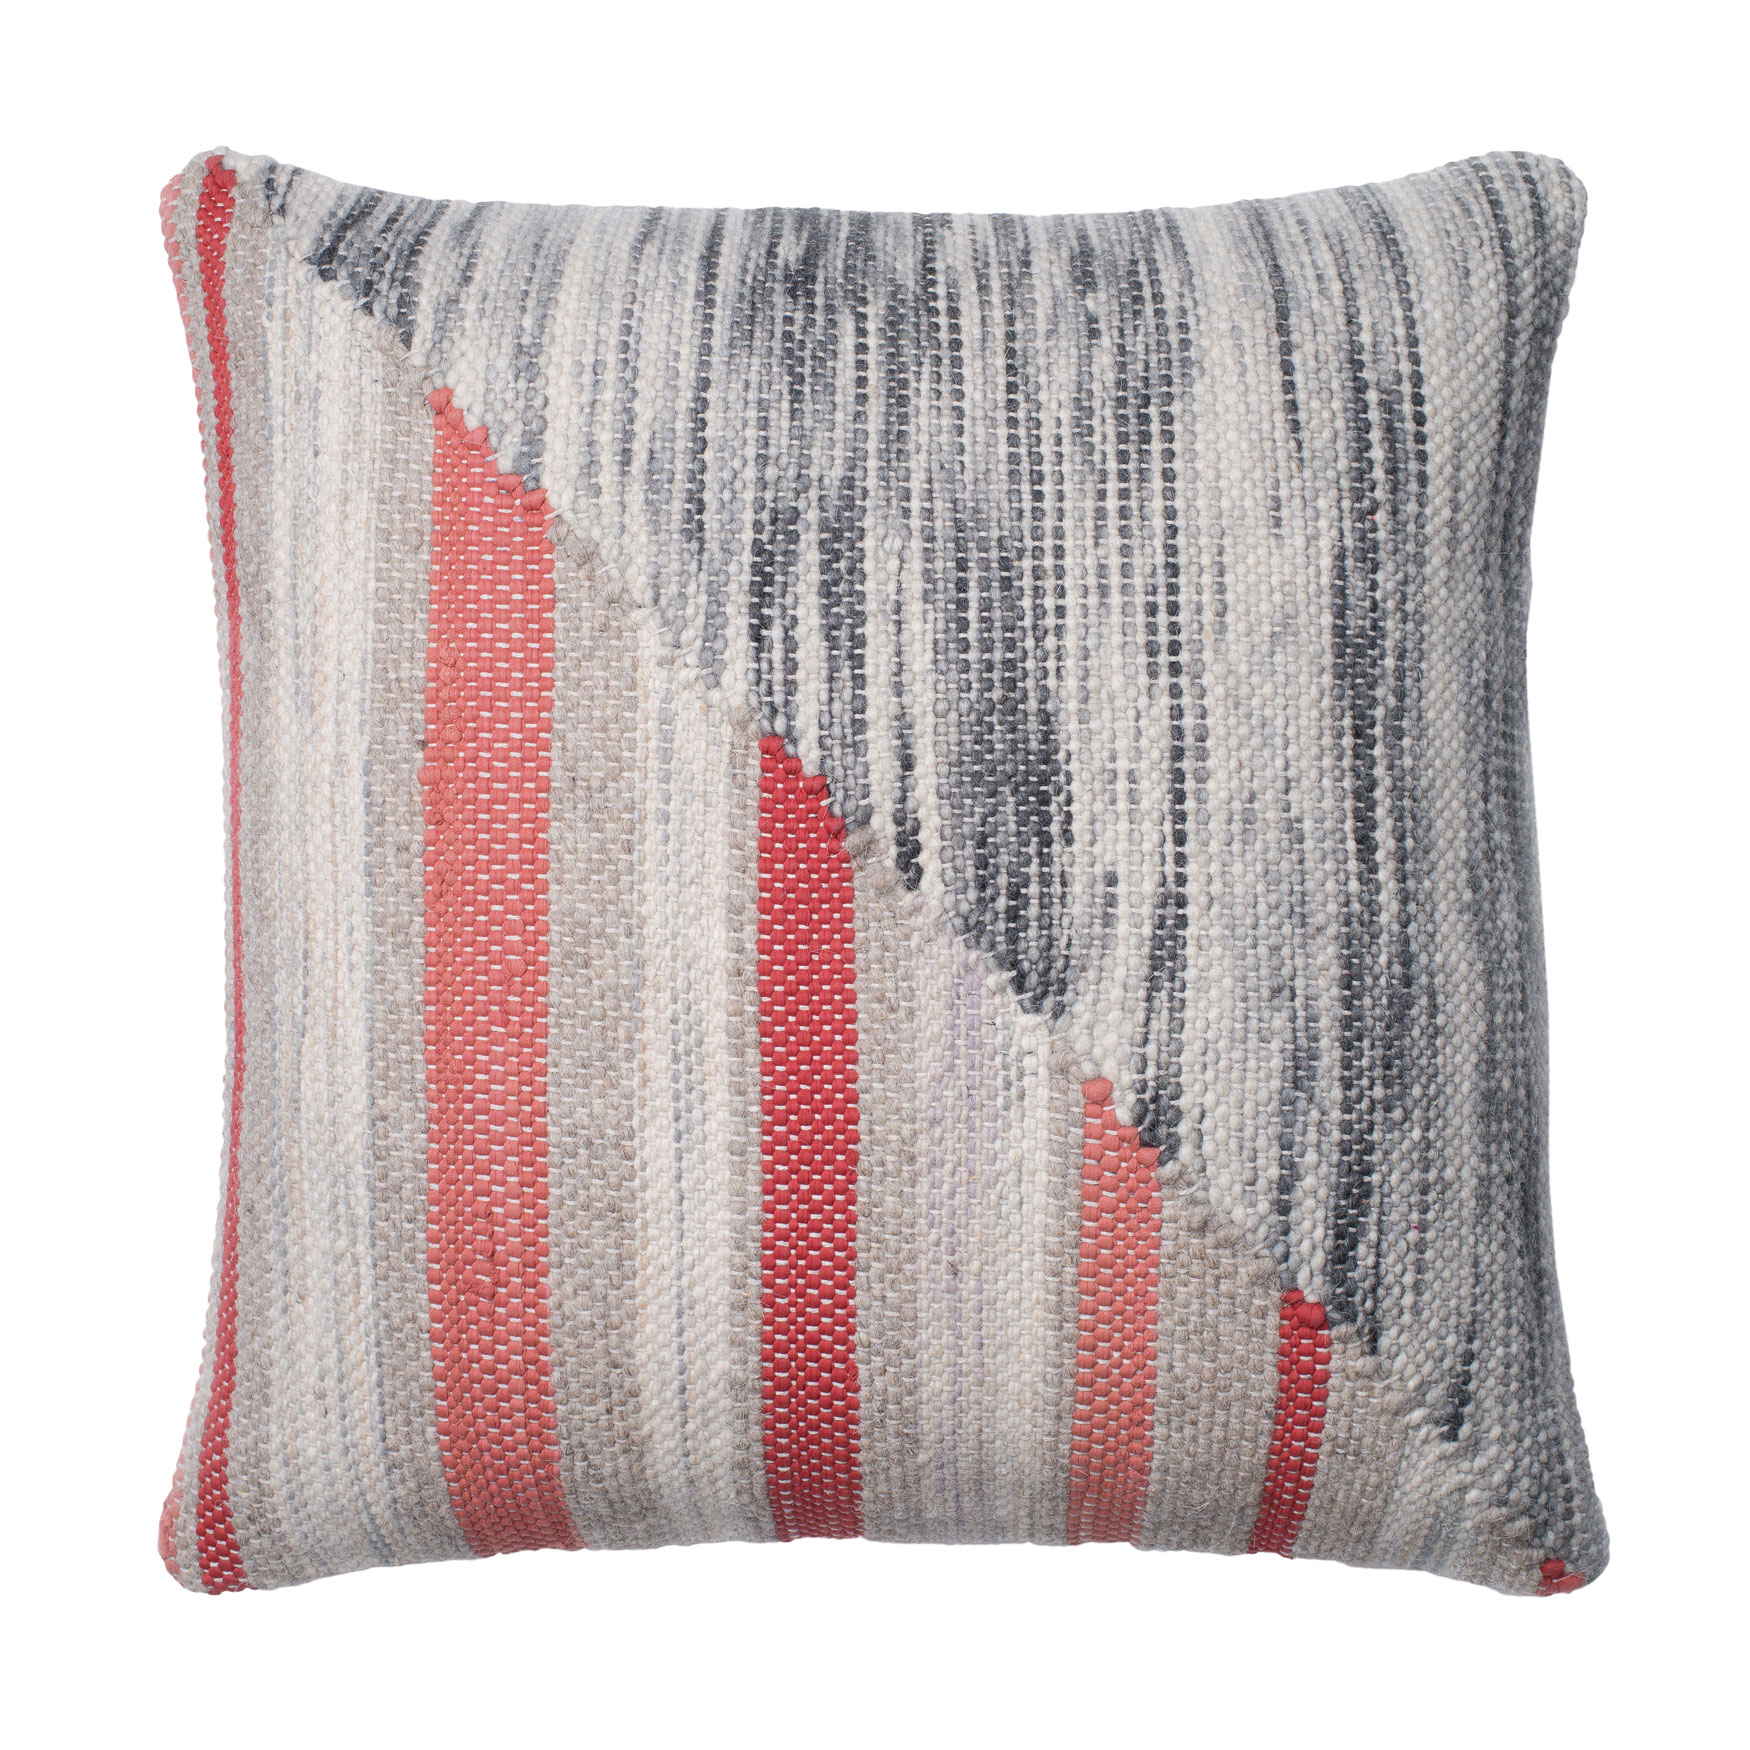 Woven Sliced Stripe Decorative Pillow, GREY CORAL